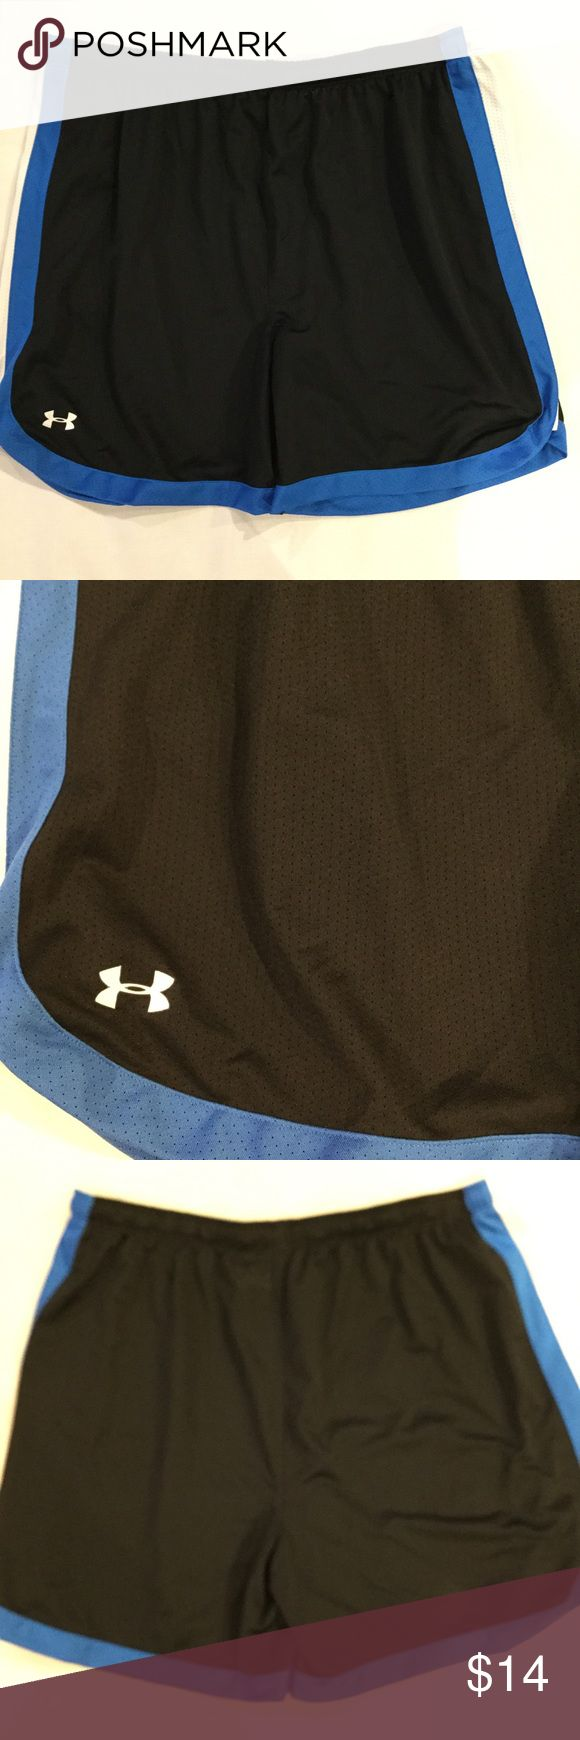 Under Armour Mesh Shorts Women's Heat Gear. Under Armour Mesh Shorts Size XL Women's Heat Gear Blue and White Striped Black Under Armour Shorts